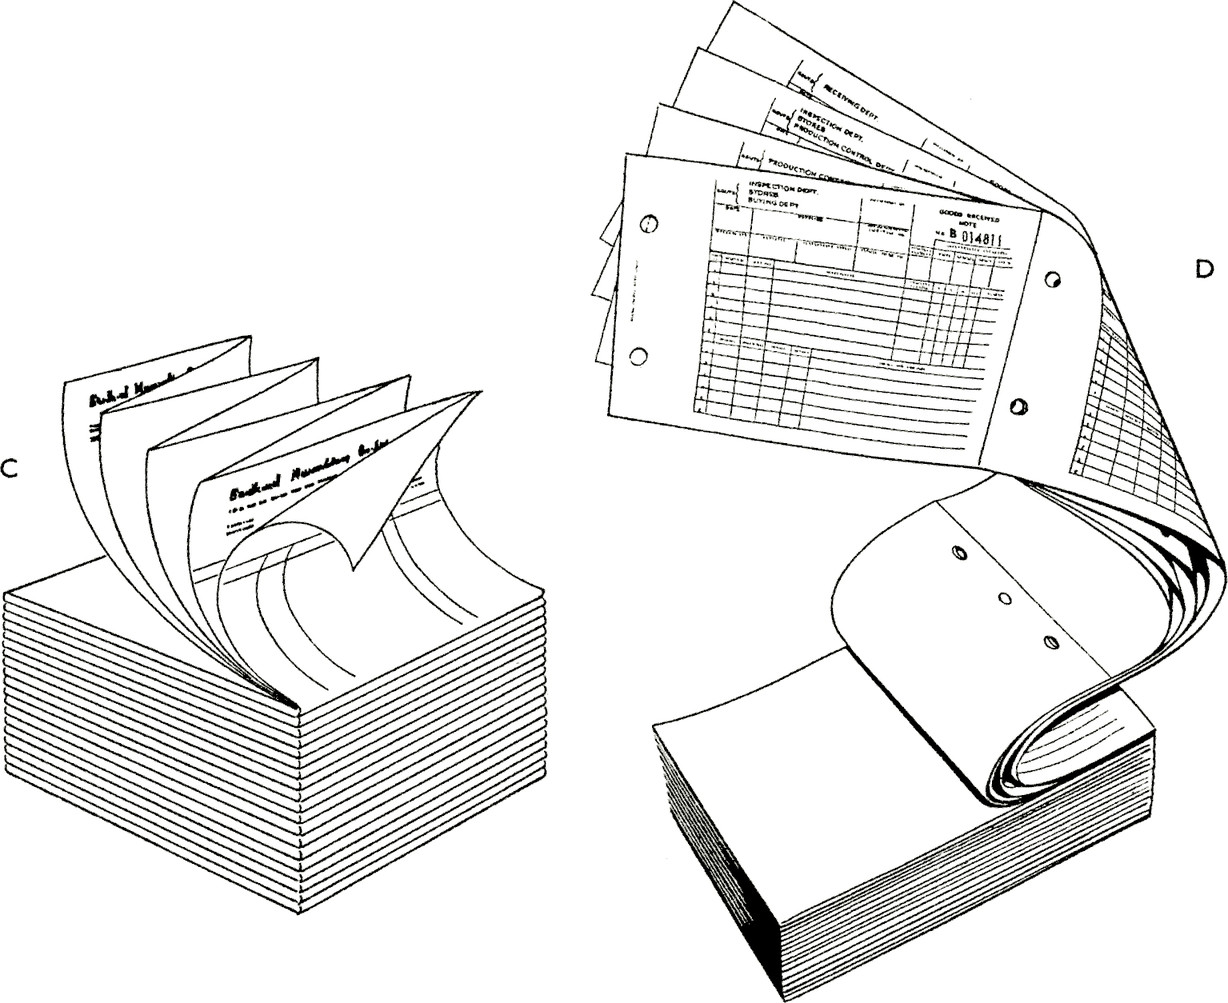 These forms are made up in perforated strips (6 forms per sheet) to facilitate typing.